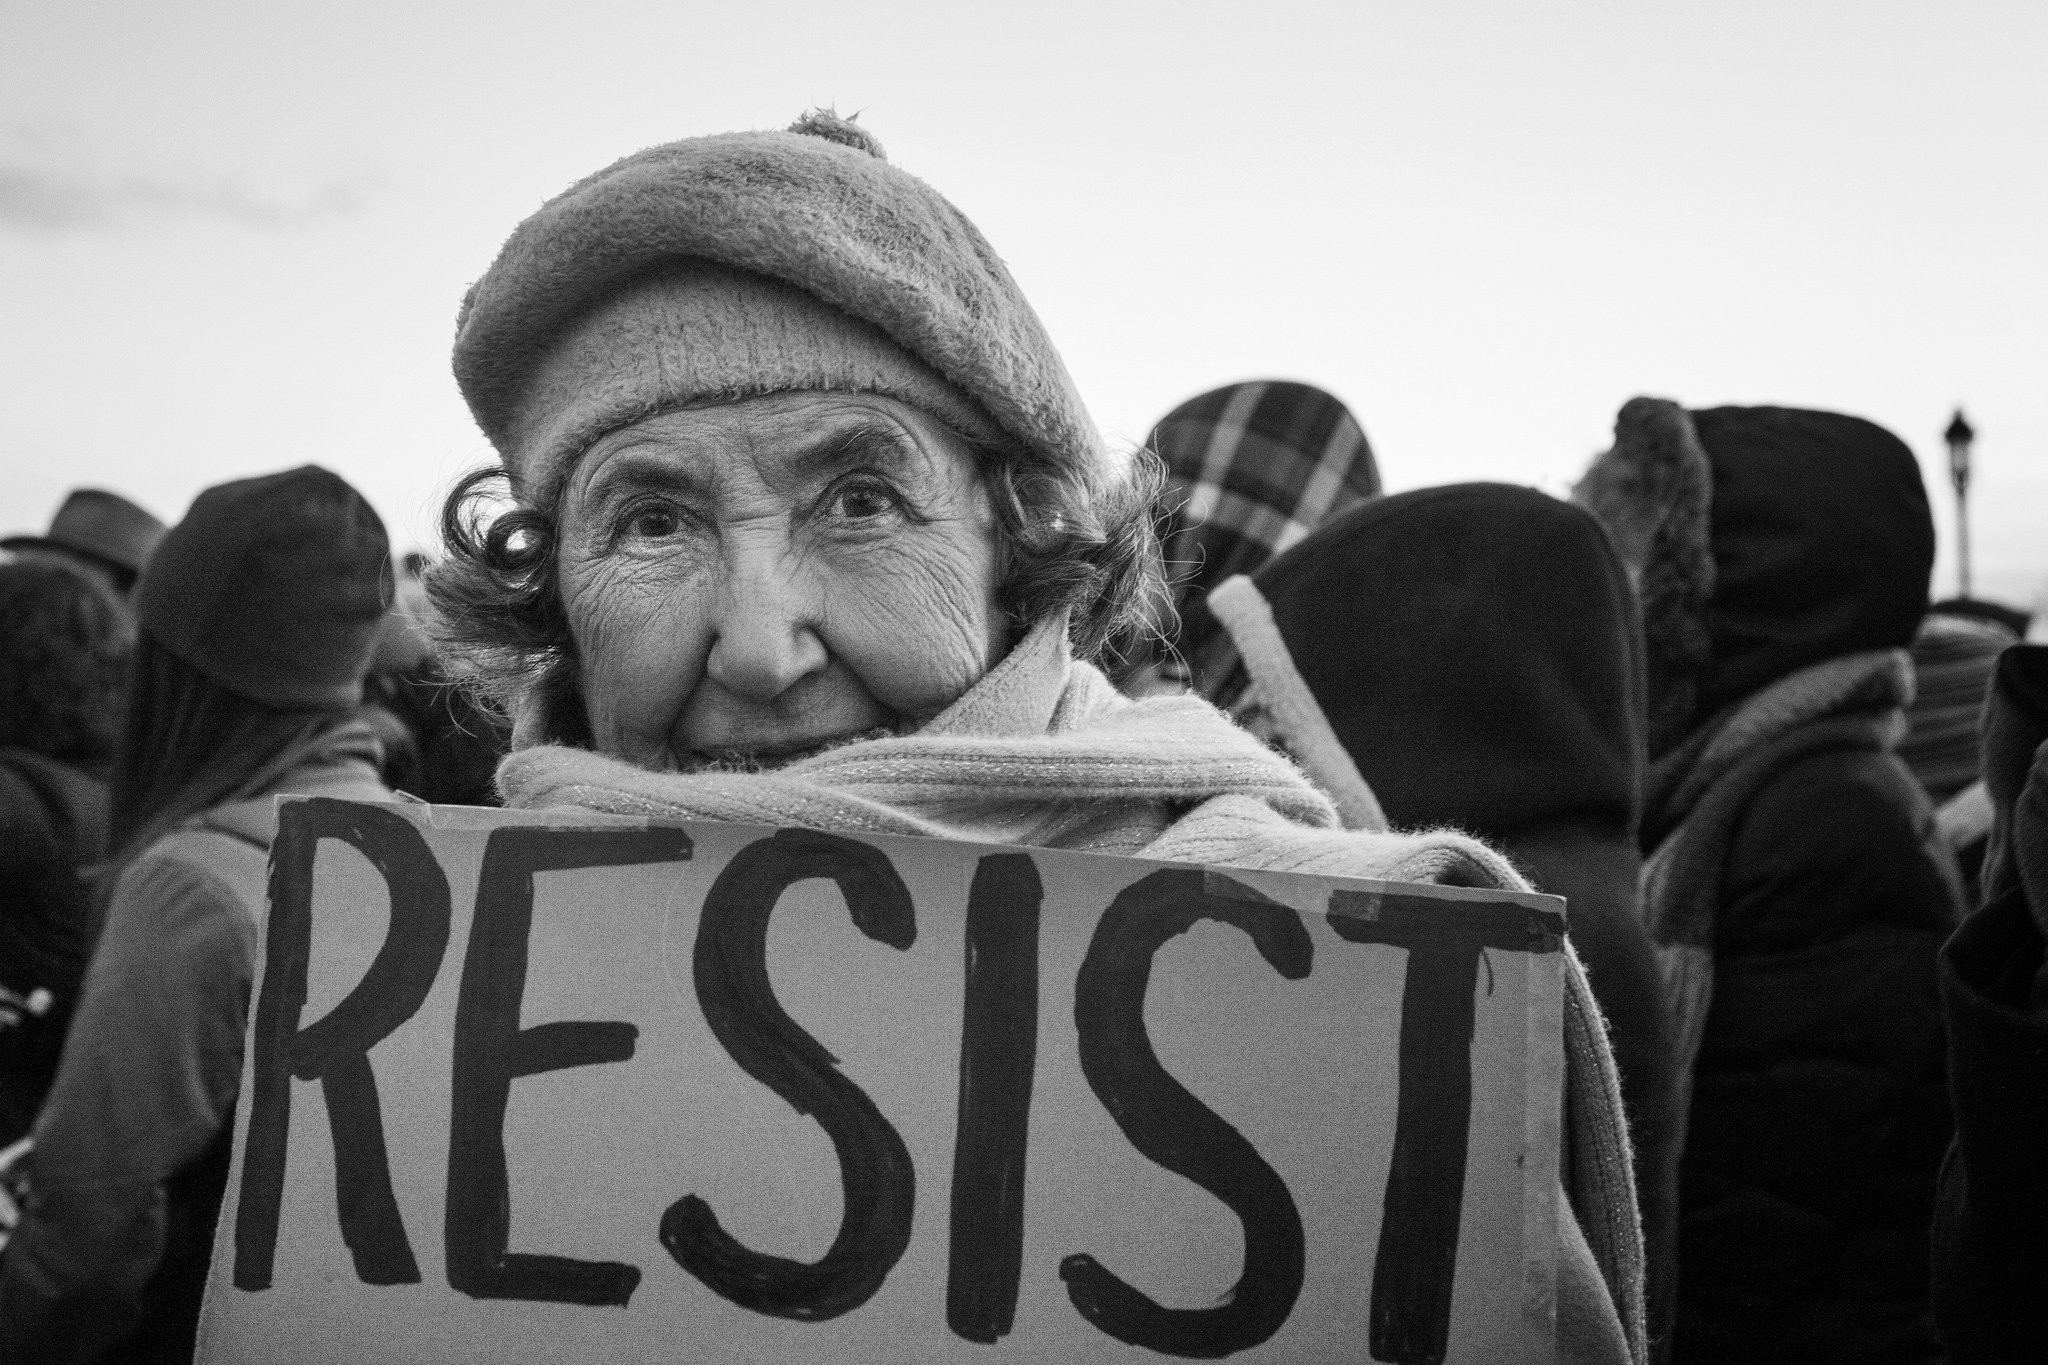 Resist - Click to see more images.